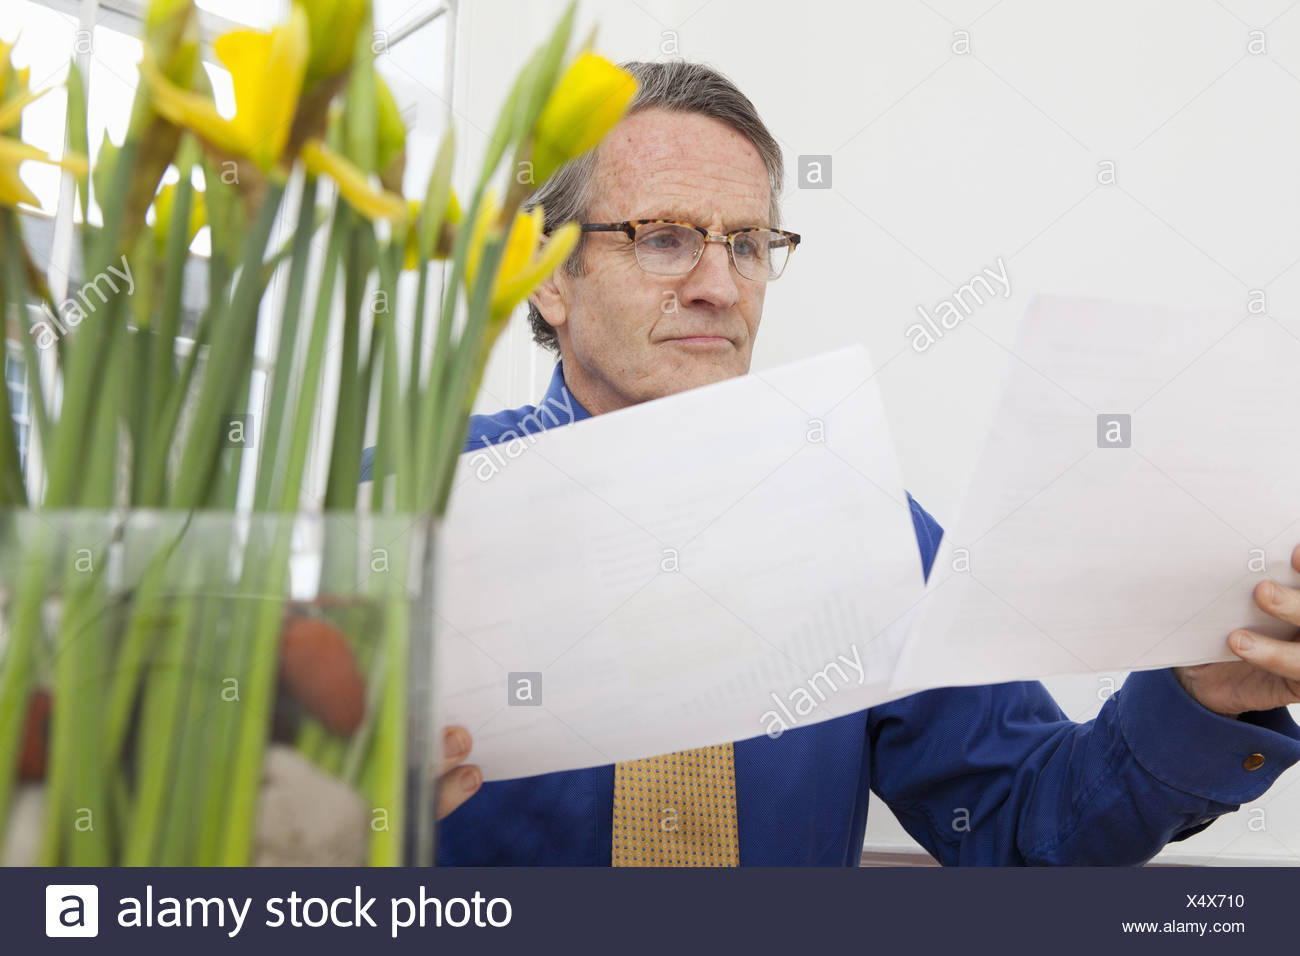 Businessman reading papers at desk Stock Photo